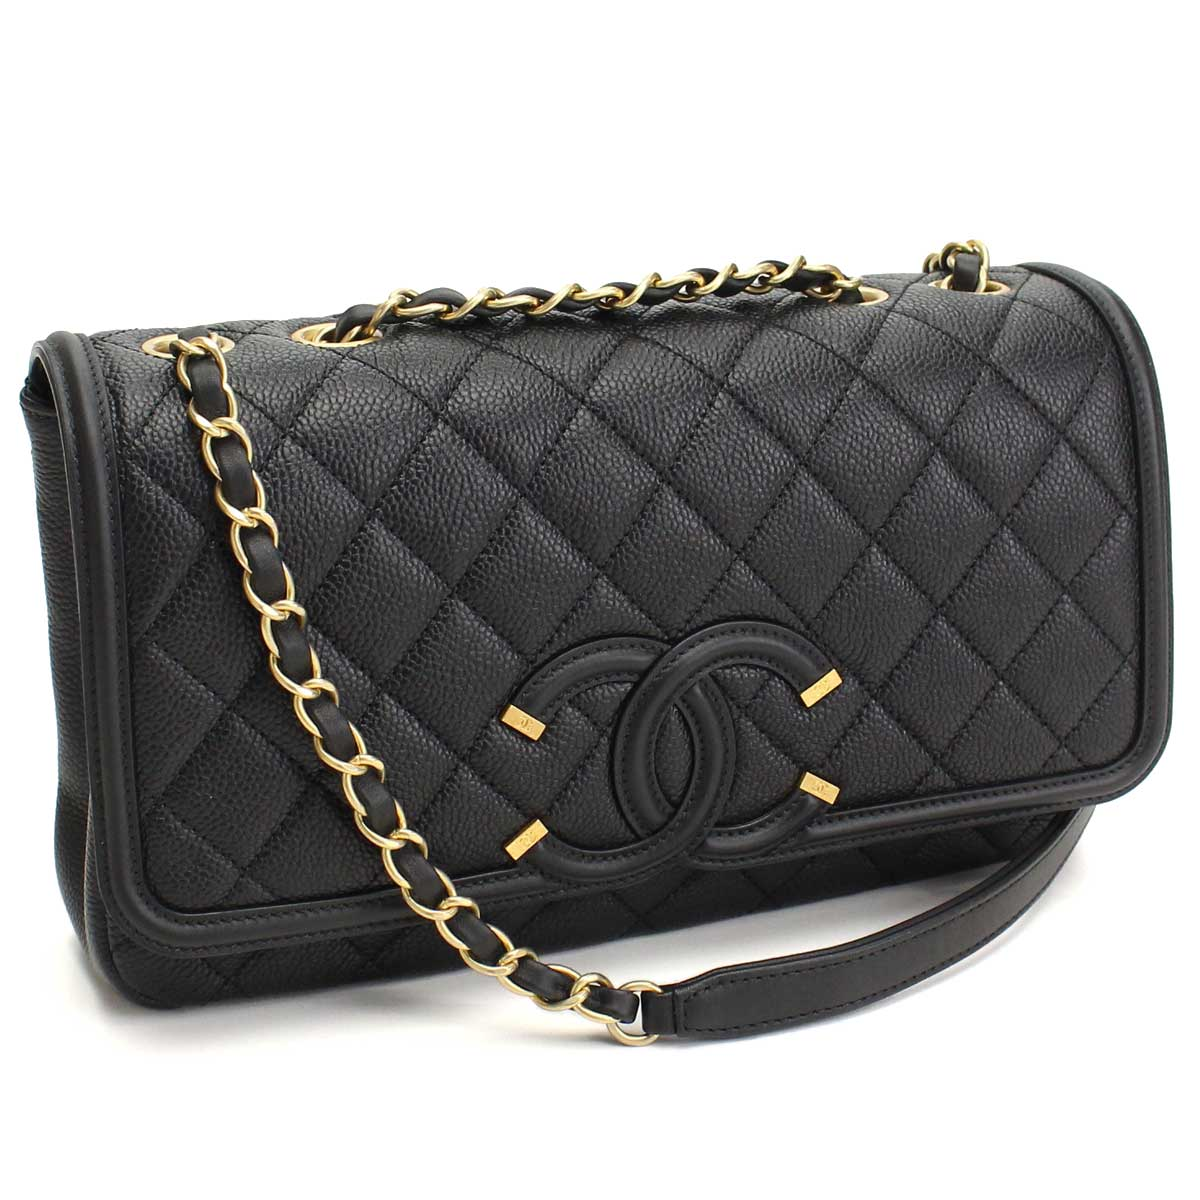 c7769faca4b0c3 Bighit The total brand wholesale: Chanel chain shoulder f laptop bag A93341  black( taxfree/send by EMS/authentic/A brand new item ) | Rakuten Global  Market